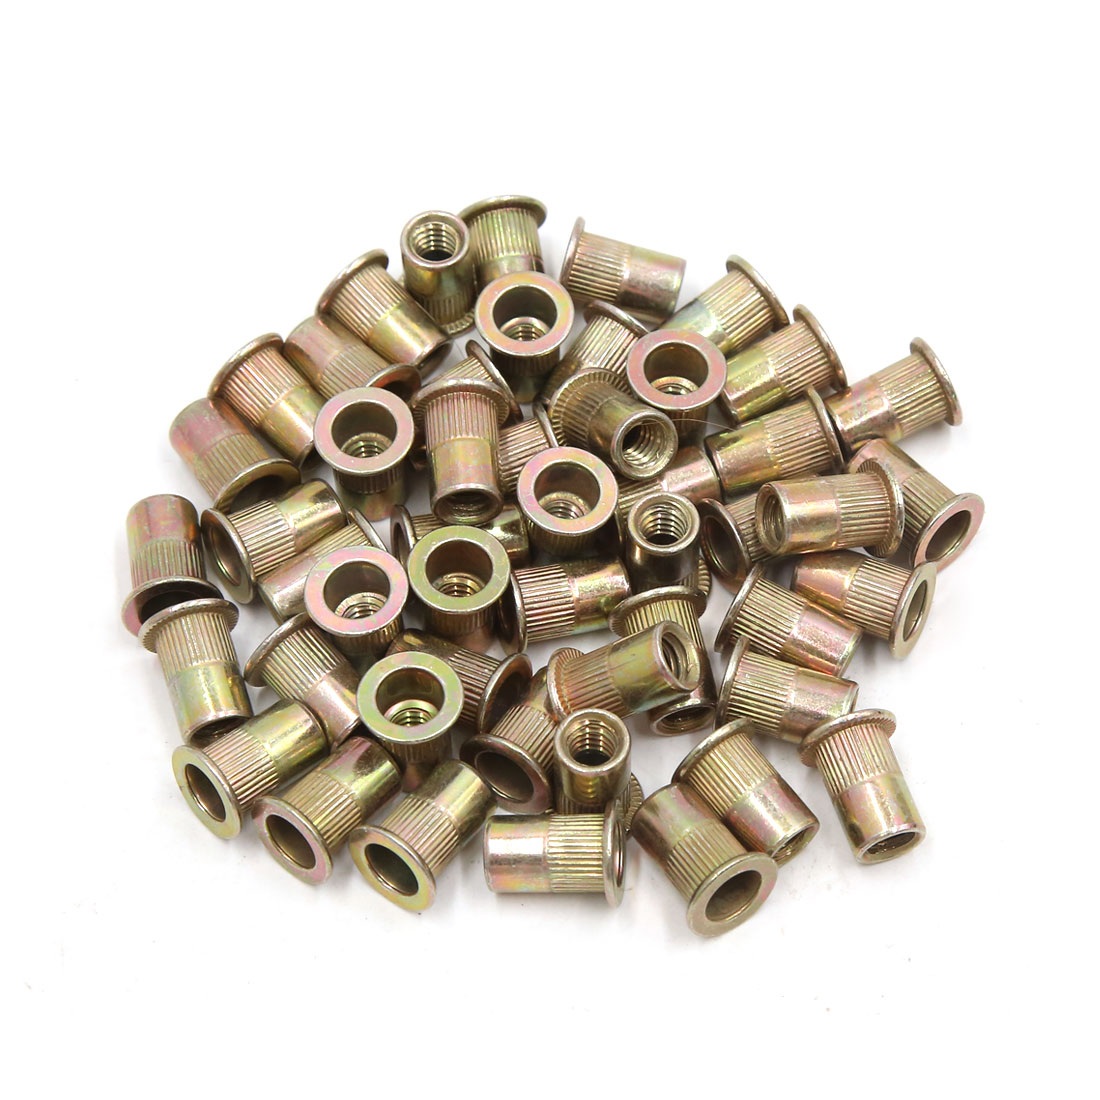 50Pcs Copper Tone Metal 1/4-20 UNC Rivet Nut Flat Head Insert Nutsert for Car